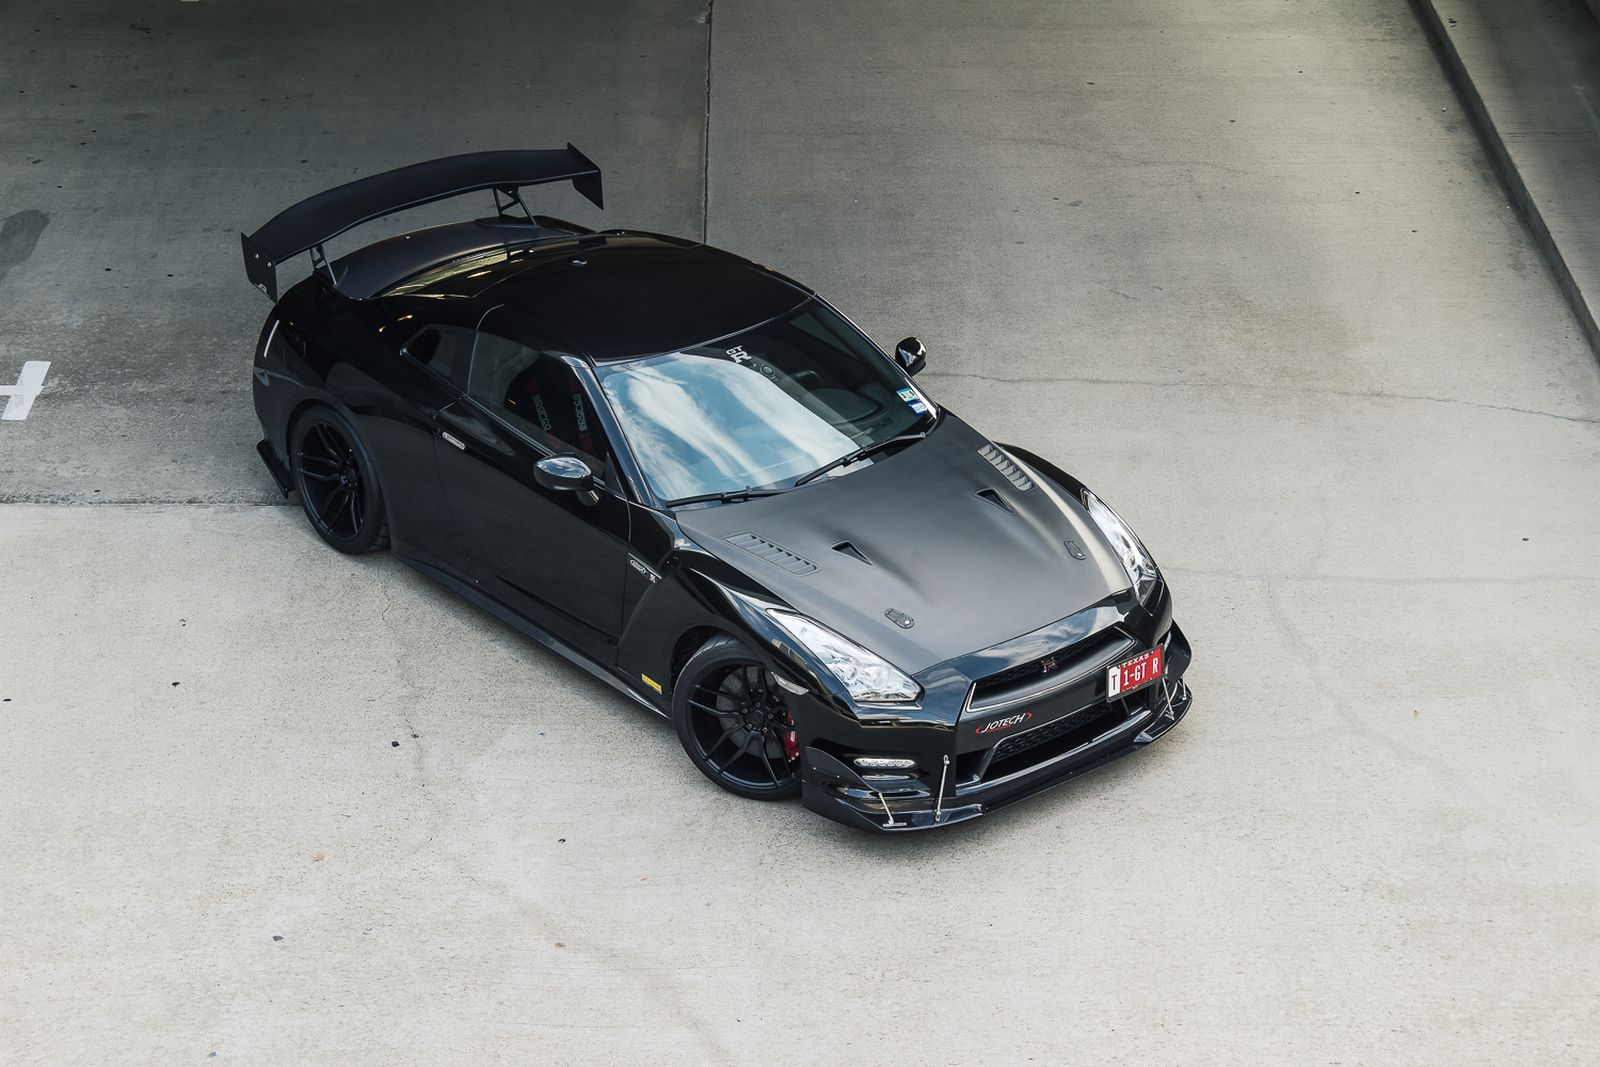 Nissan GT-R by Jotech, Monster Power Sits Underneath the Skin